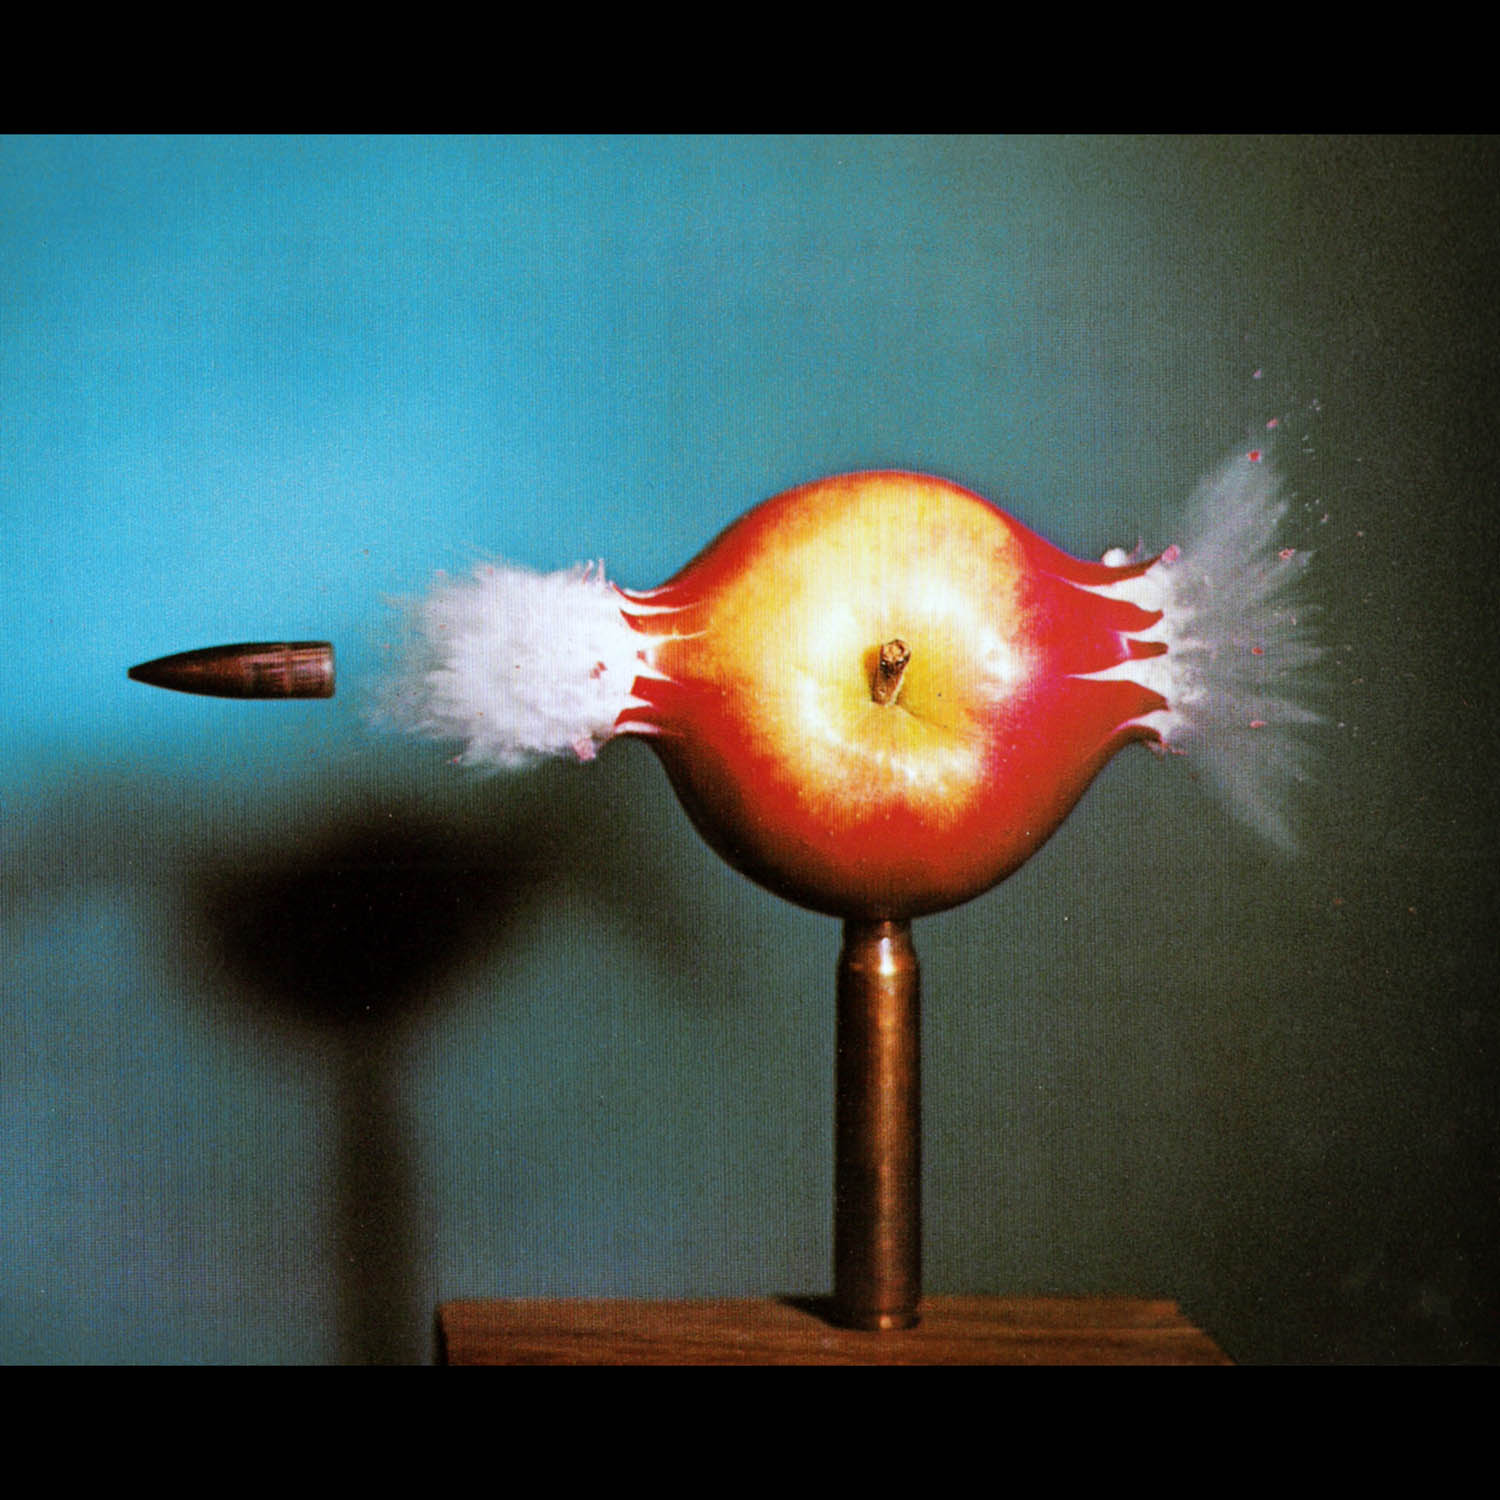 edgerton_bullet through apple.jpg